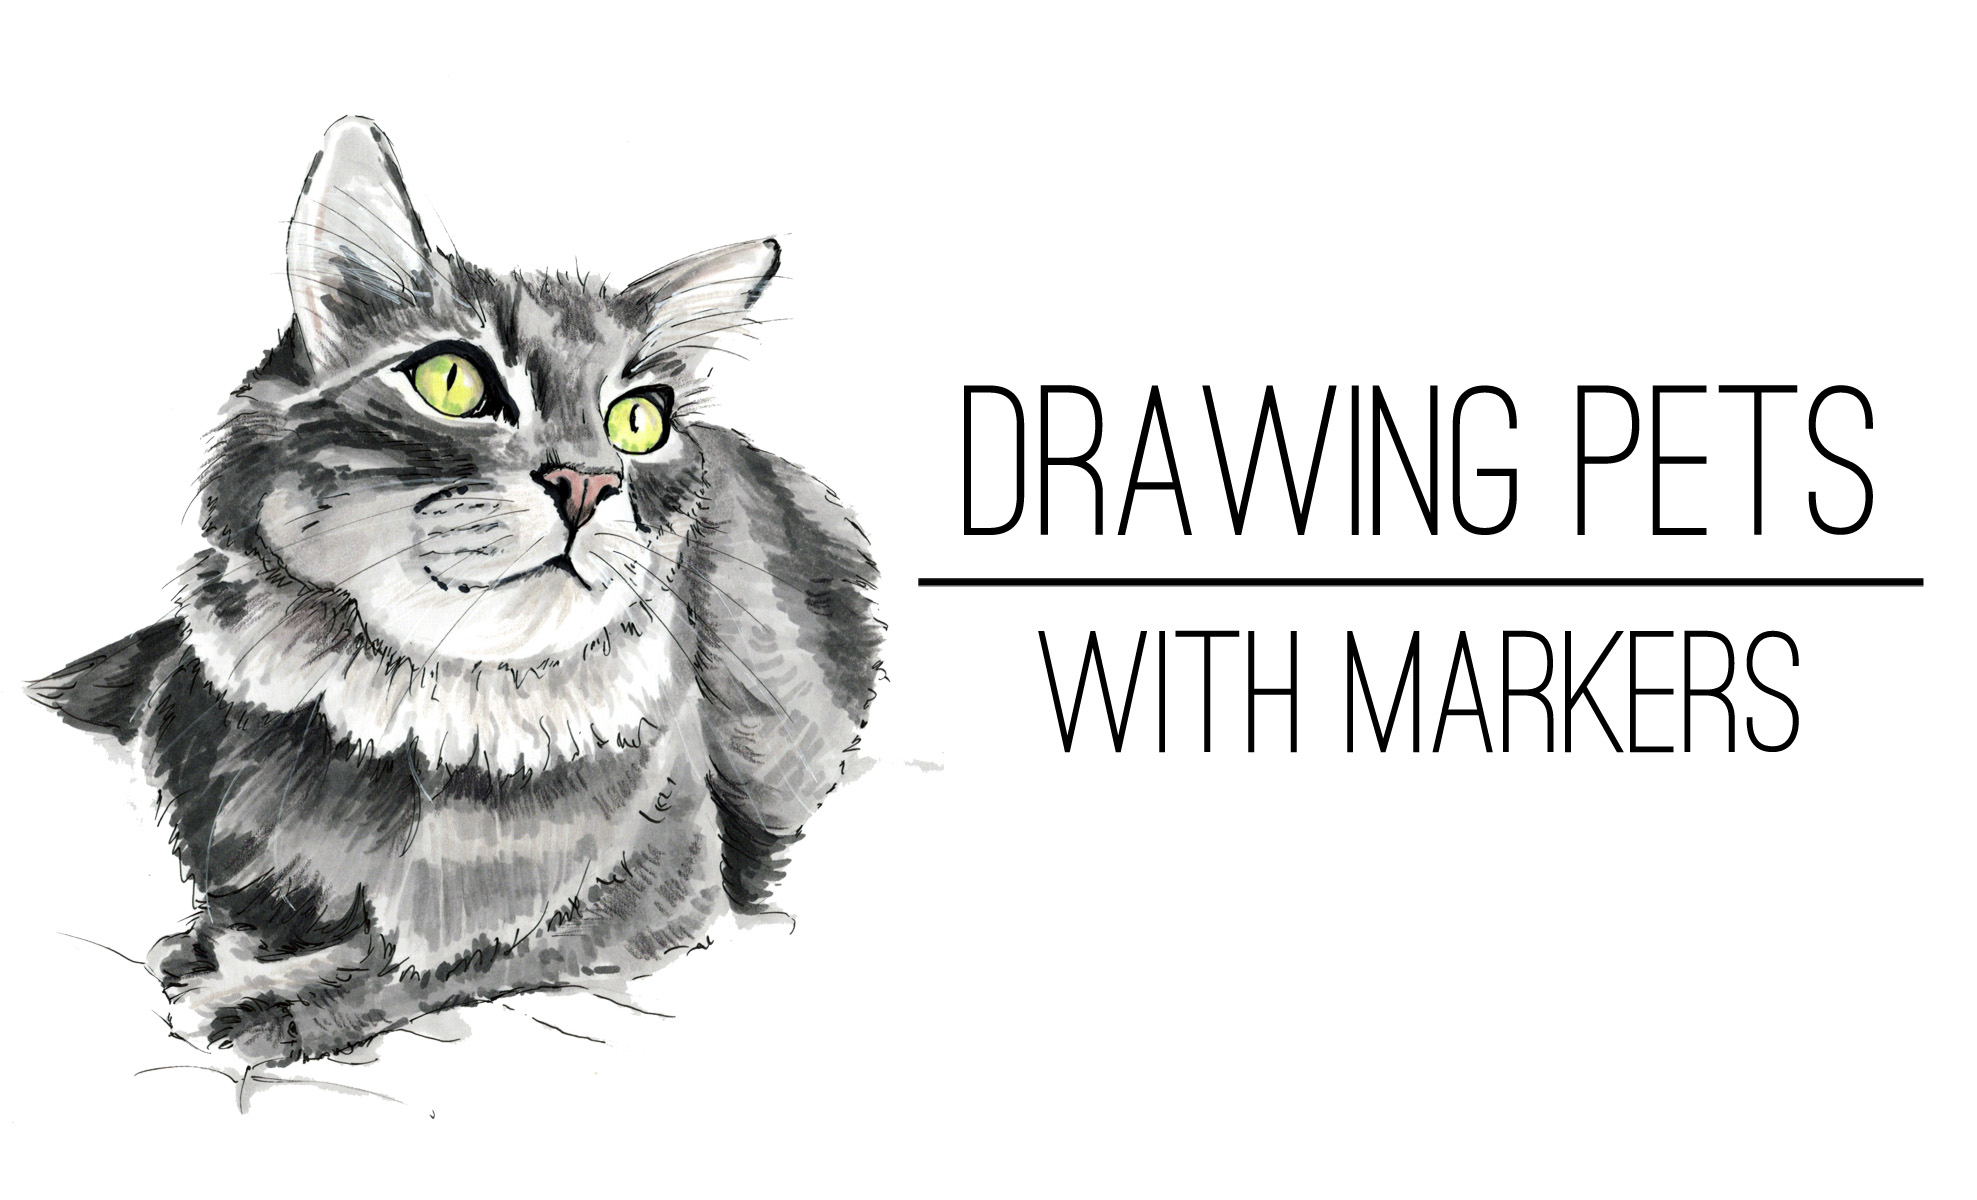 drawing-pets-with-markers.jpg